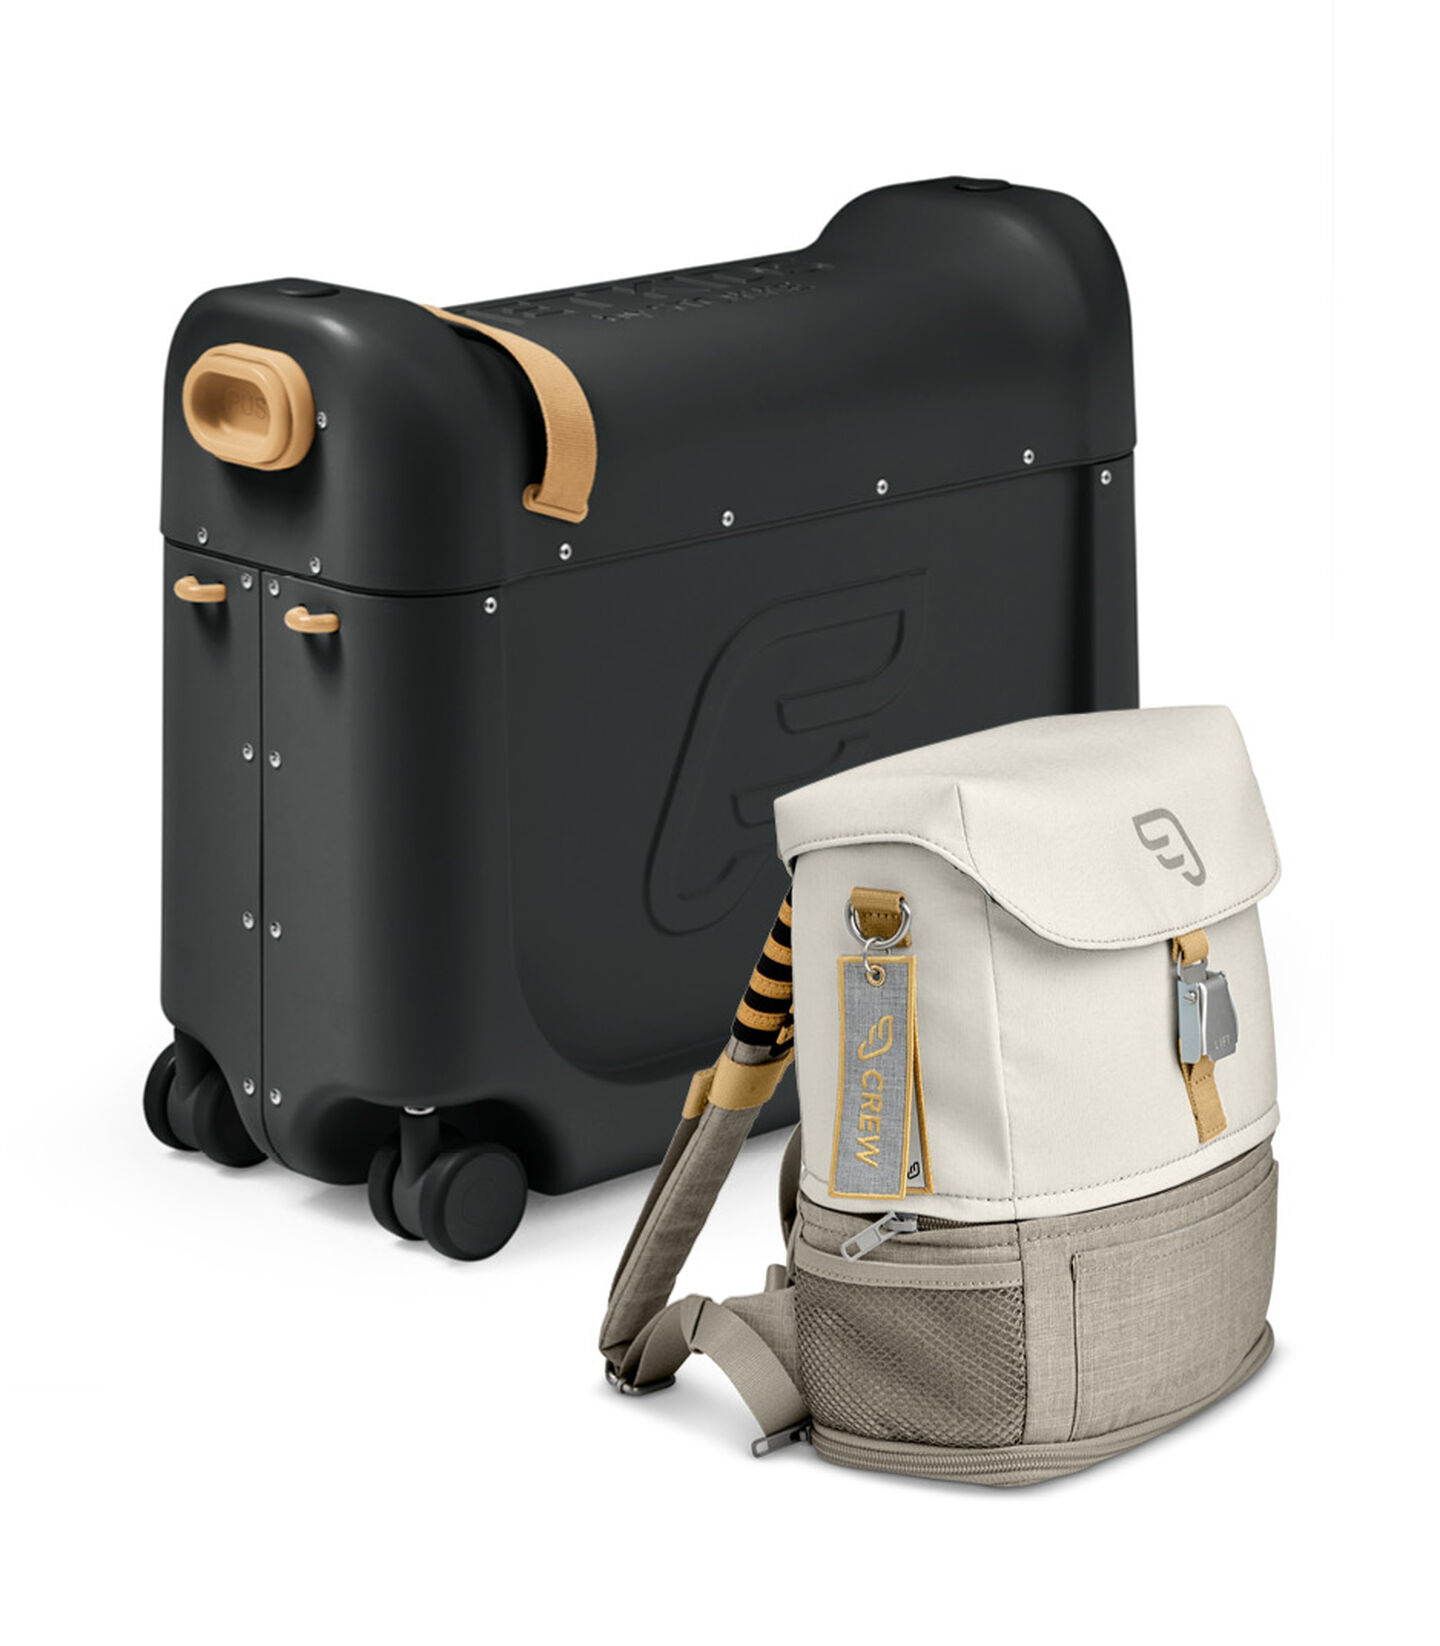 JetKids™ by Stokke® Crew BackPack, Full Moon and BedBox V3, Lunar Eclipse view 2